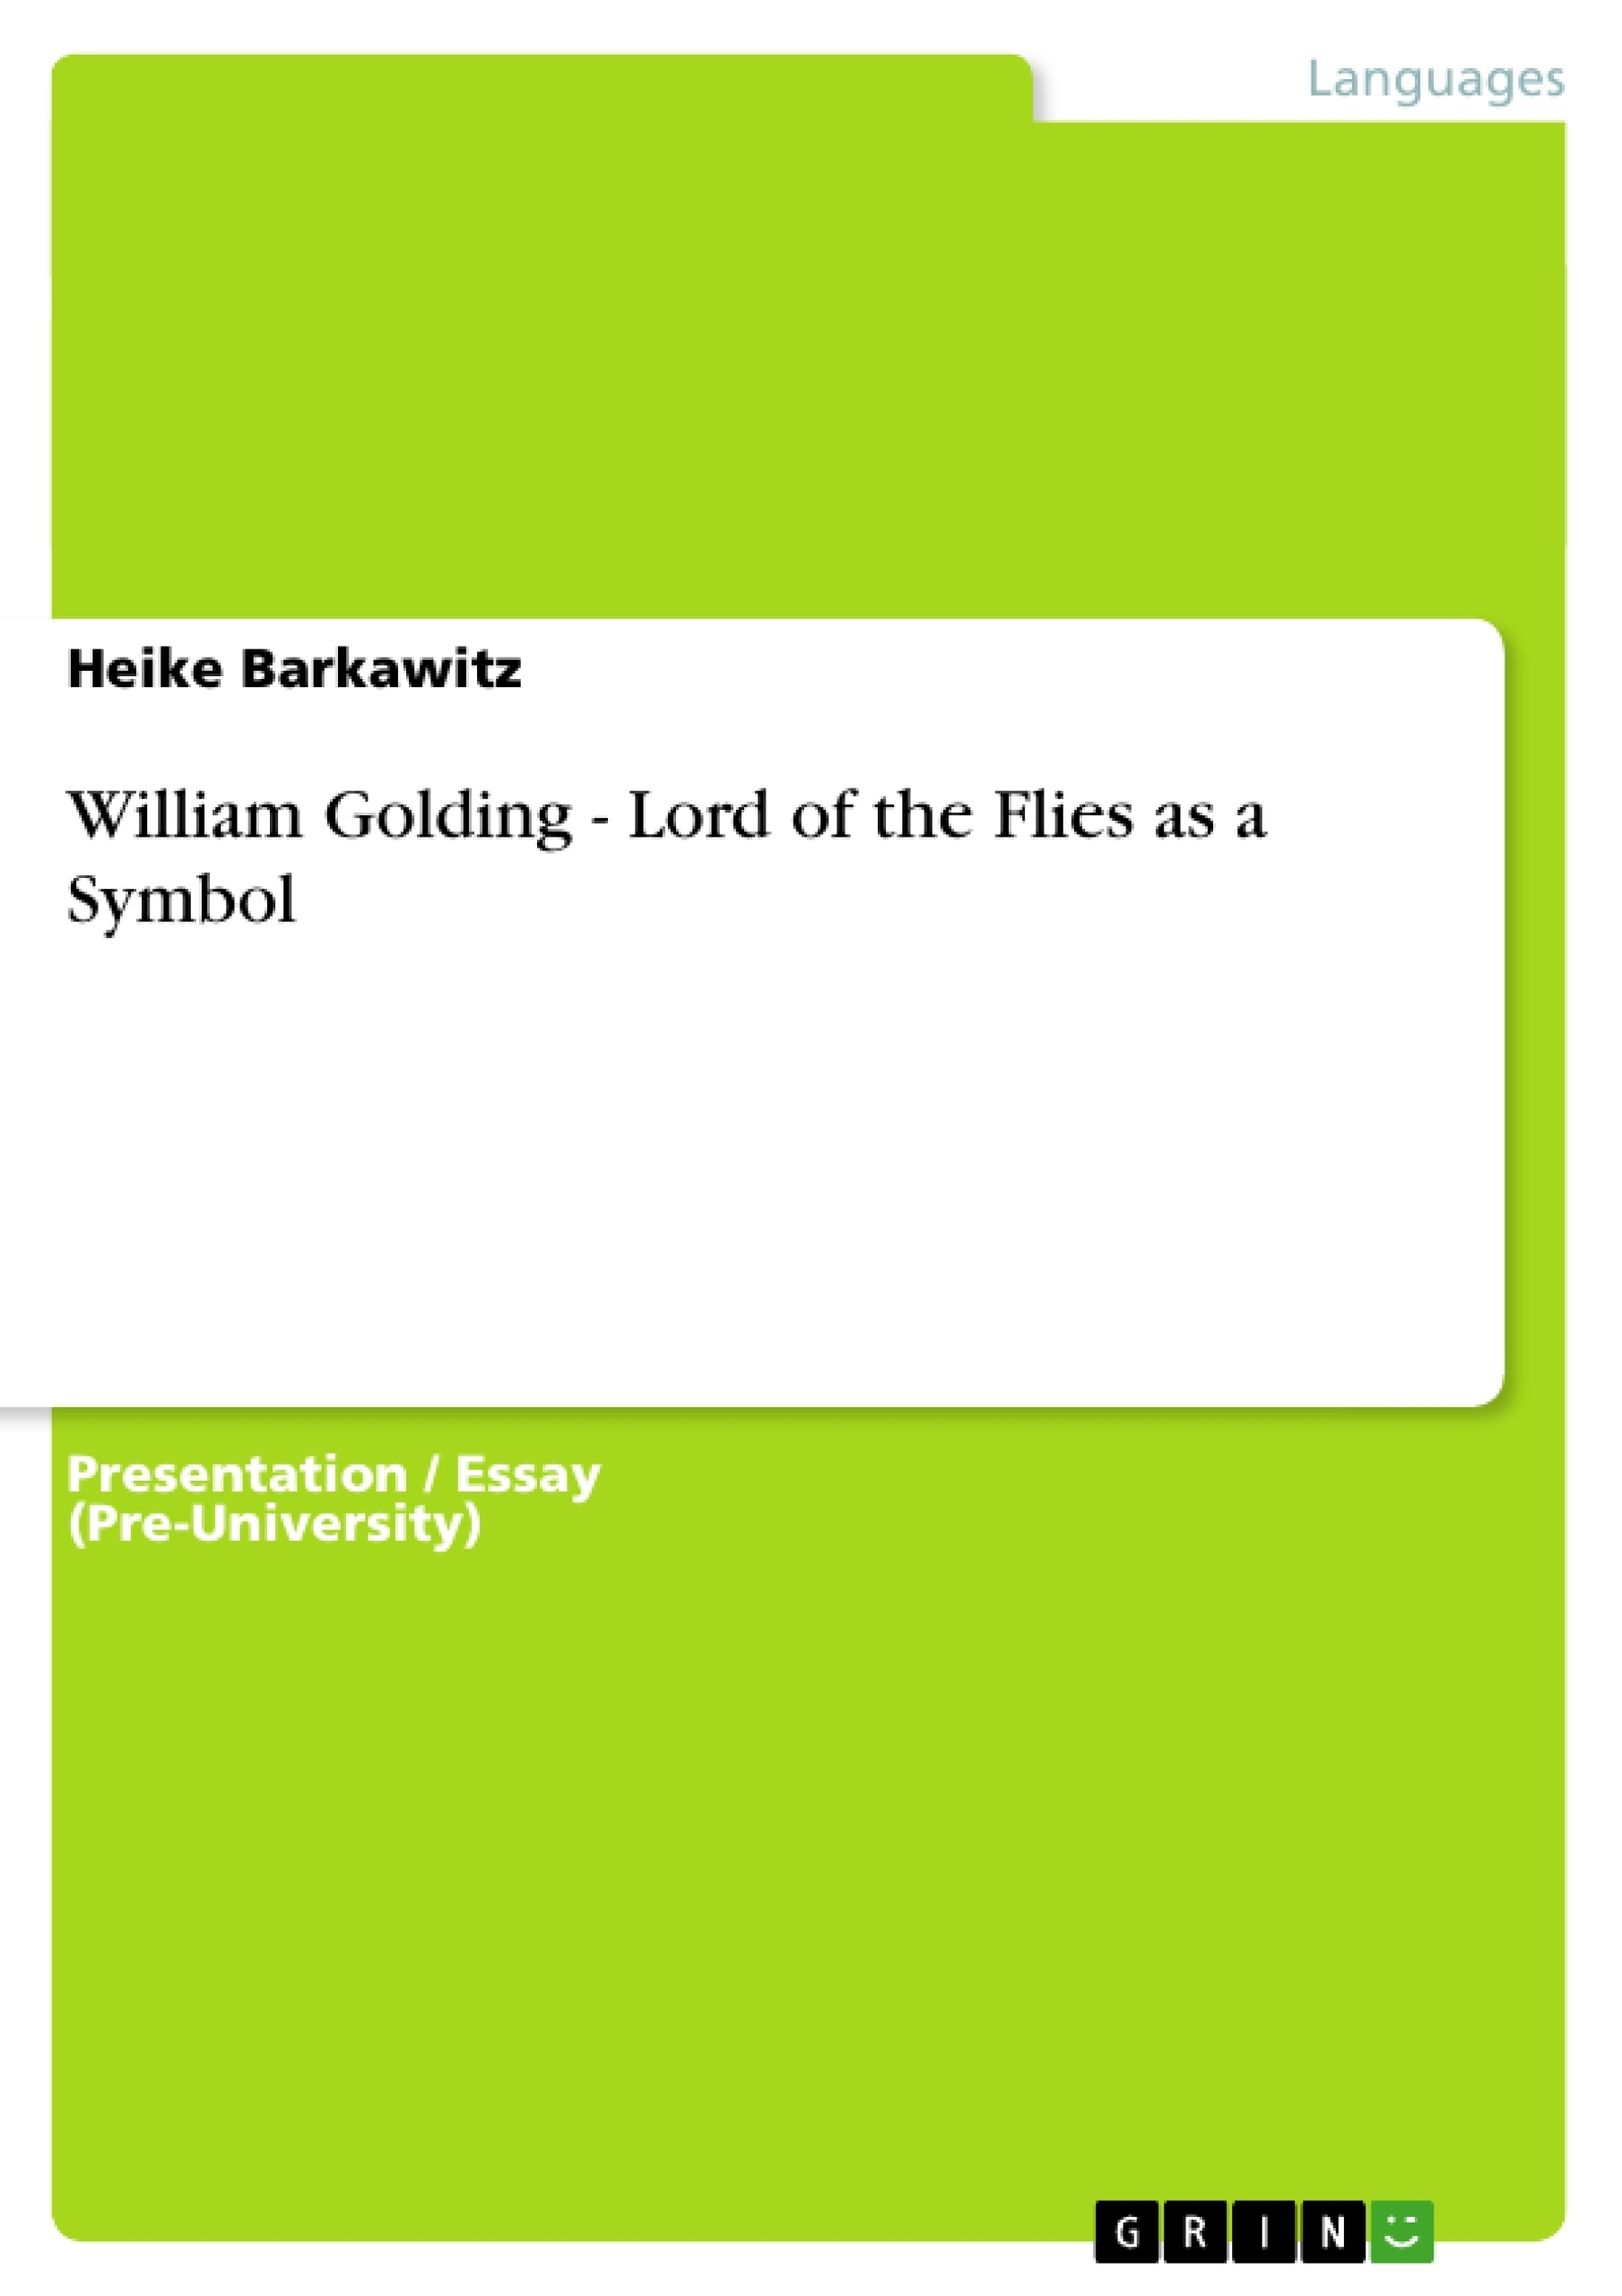 William golding lord of the flies as a symbol publish your upload your own papers earn money and win an iphone x biocorpaavc Image collections